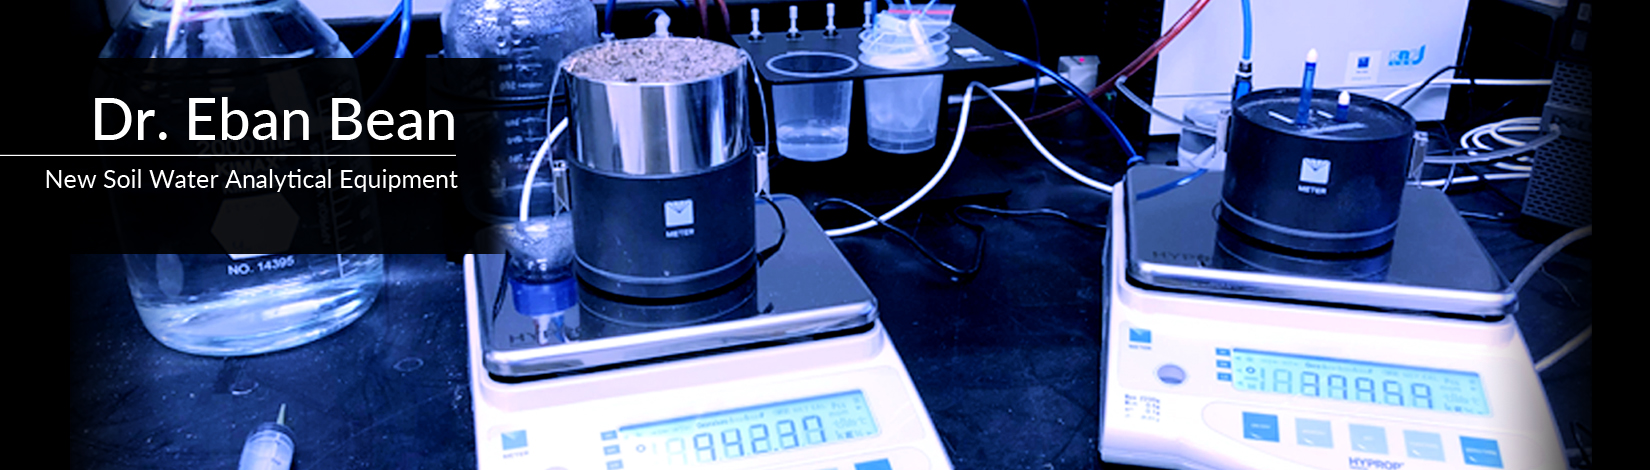 New Soil Water Analytical Equipment